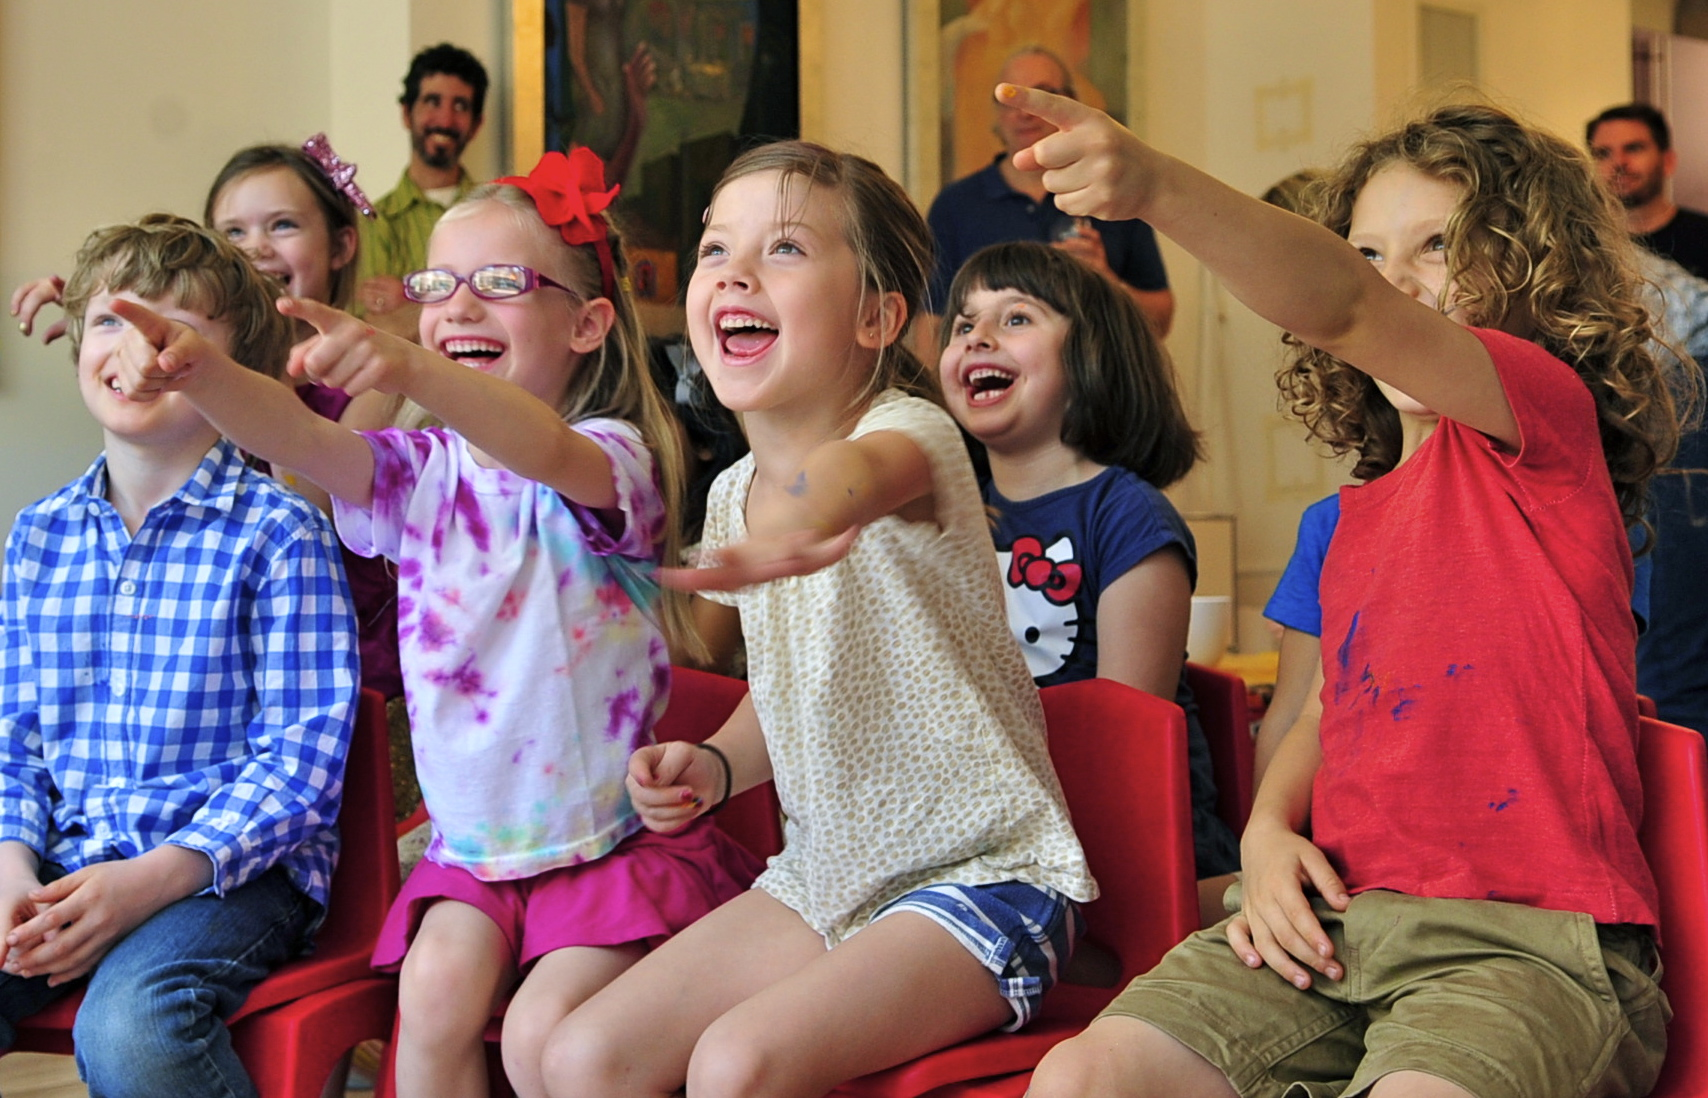 Magic Show For Kids - Entertainer Blog Article By Admin - Blog Contributor